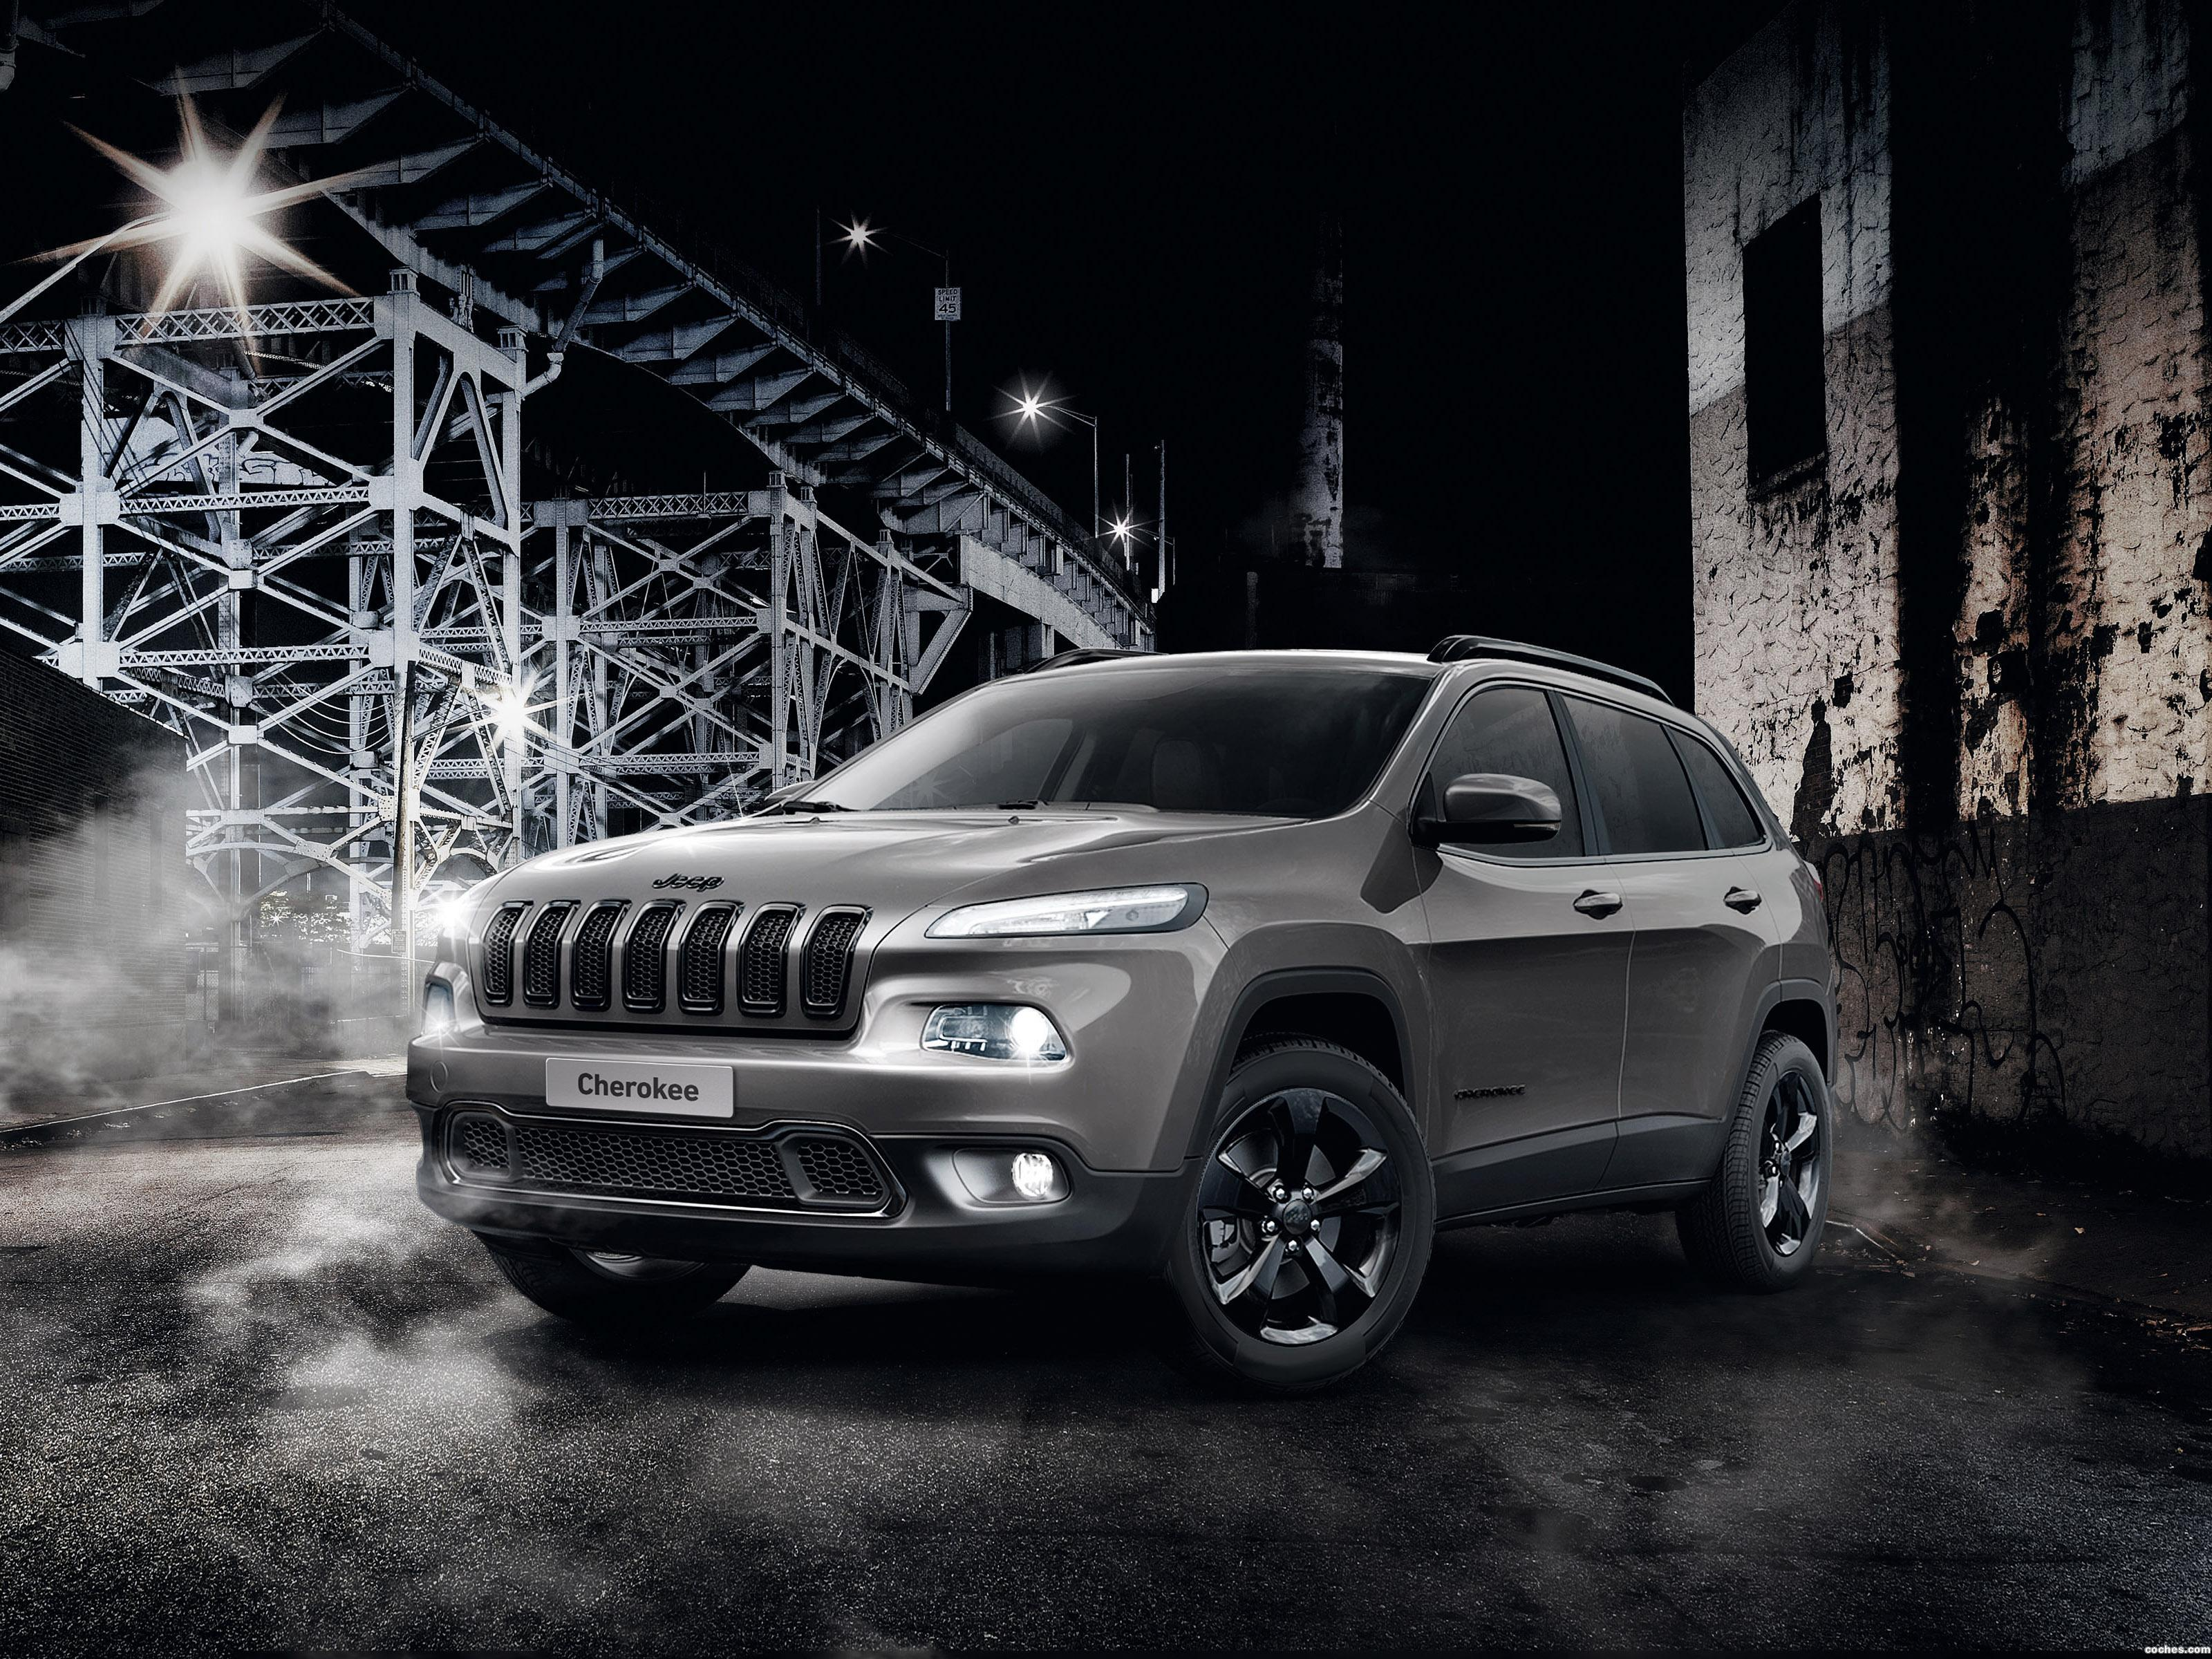 jeep_cherokee-night-eagle-2015_r4.jpg